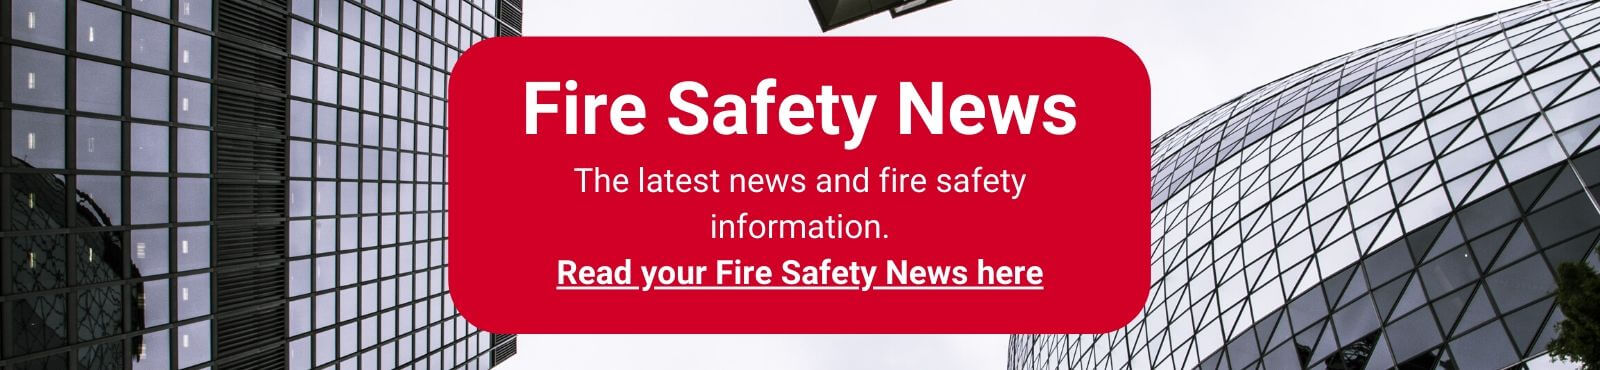 fire safety news